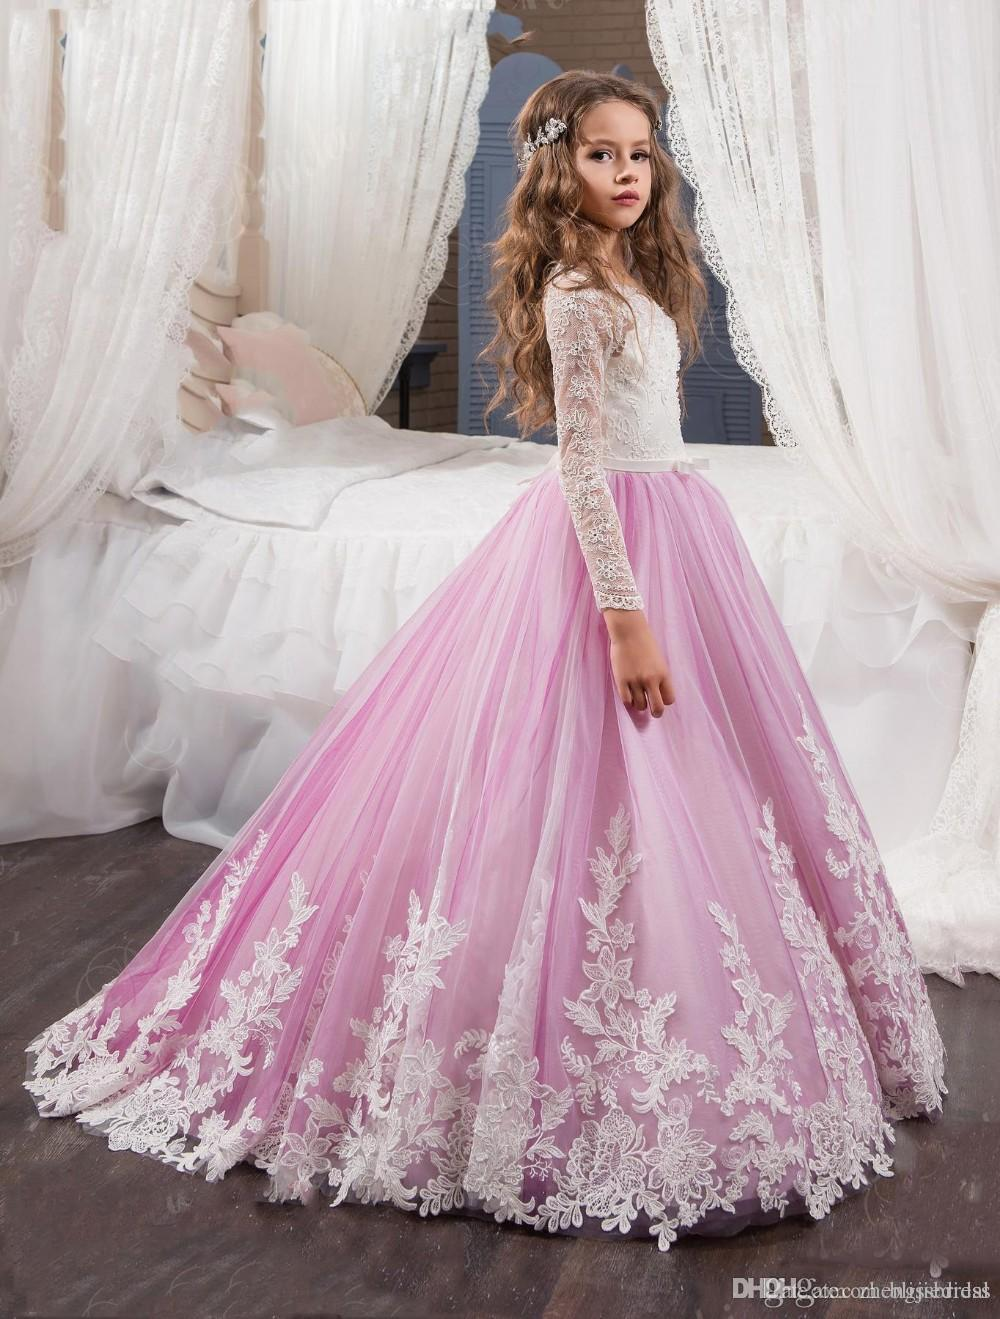 2017 Princess Long Sleeves Lace Flower Girl Dresses Vestidos Puffy Pink Kids Evening Ball Gown Party Pageant Dresses Girls